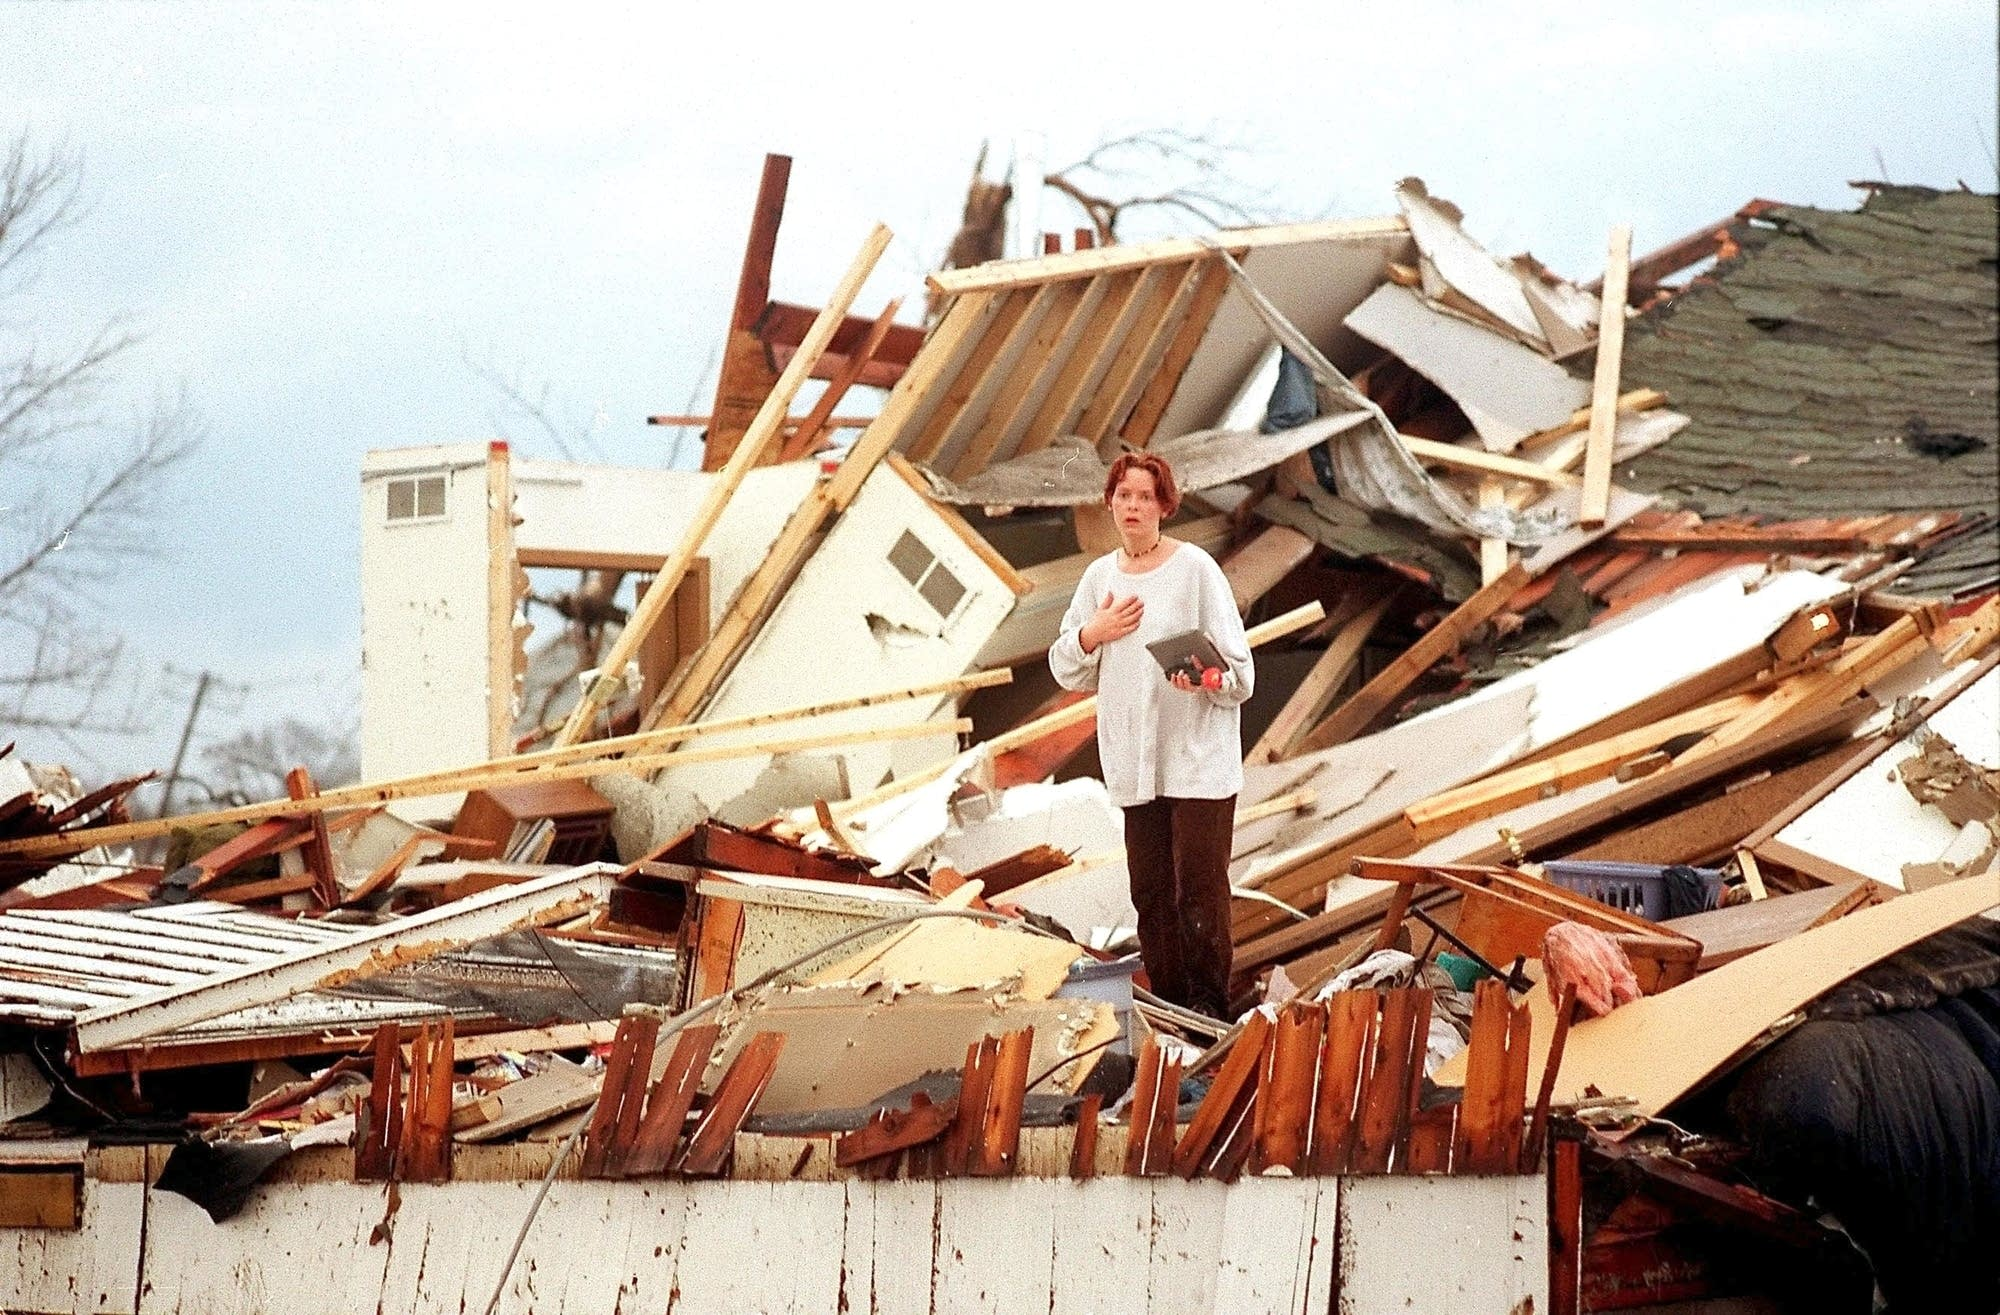 Tornado devastated St. Peter, but healed town-gown relationship ...